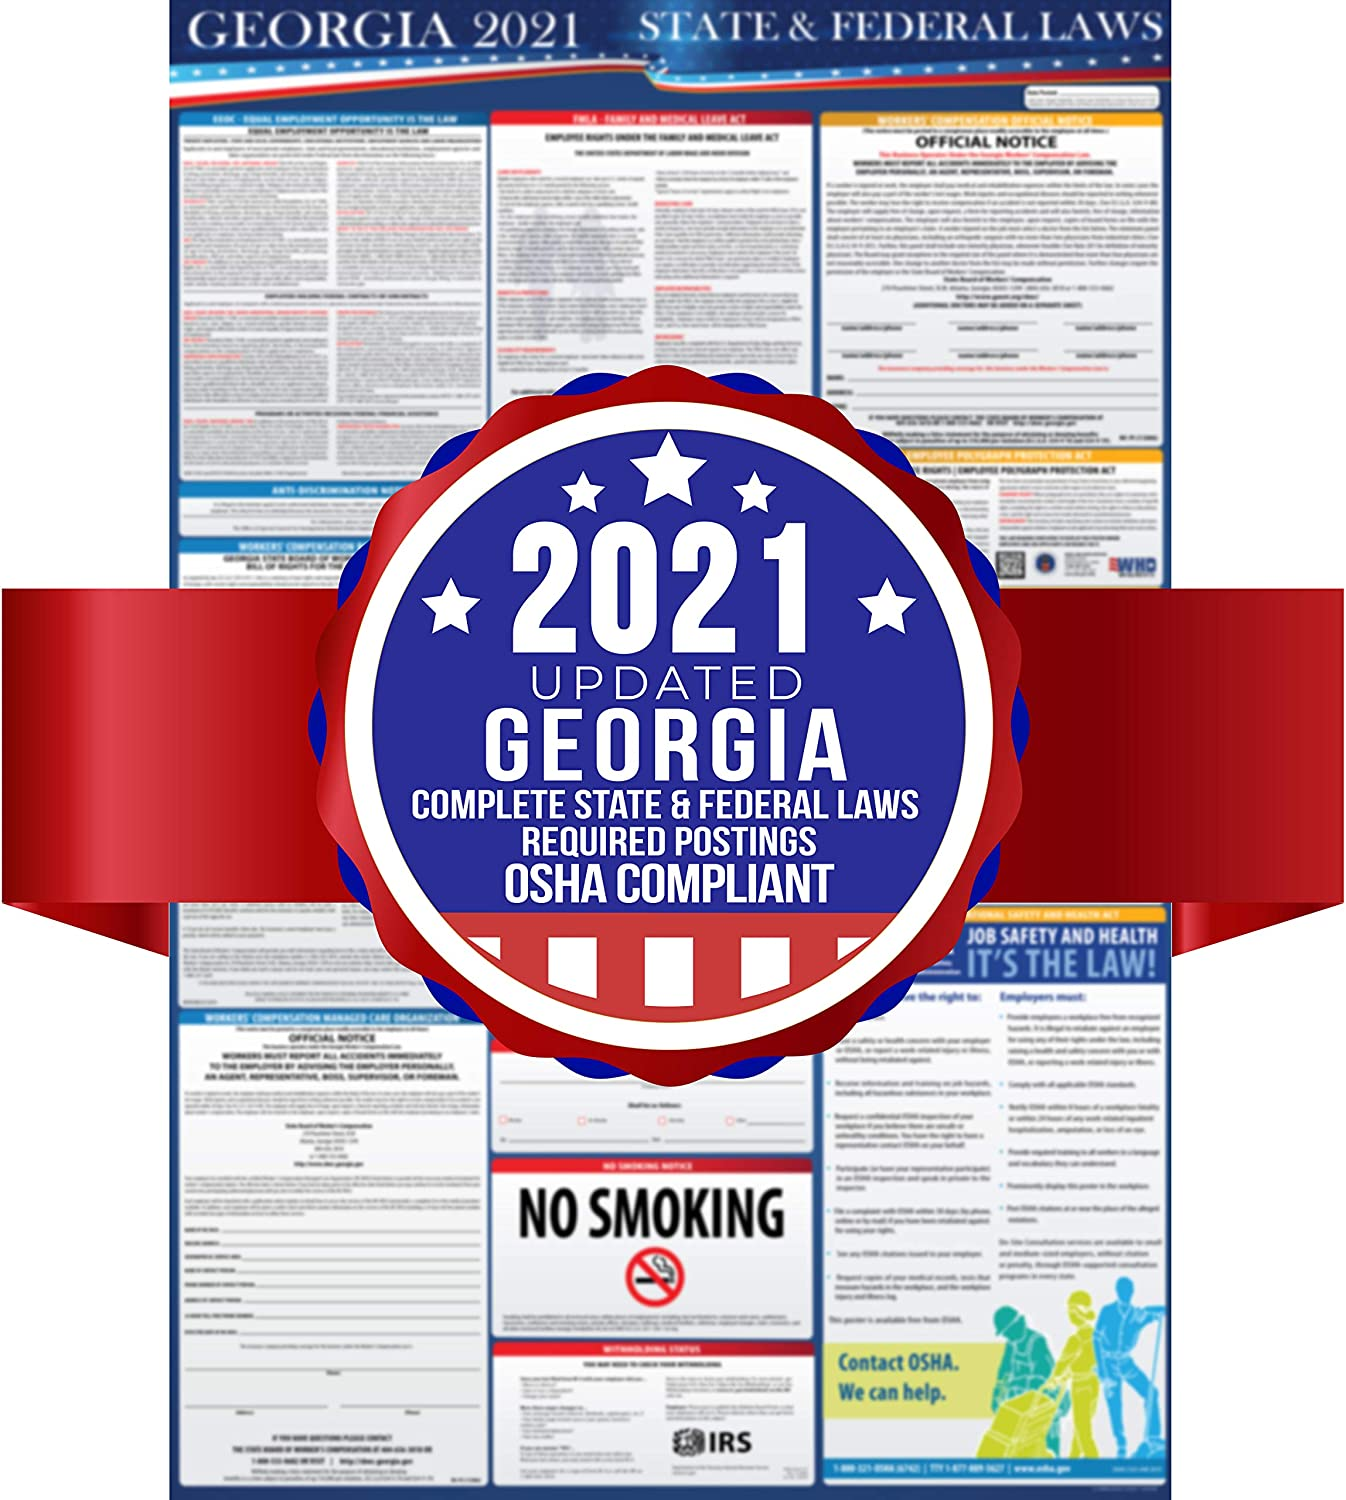 2021 Georgia State Selling rankings and Federal Labor - Max 43% OFF Laws OSHA Workplac Poster